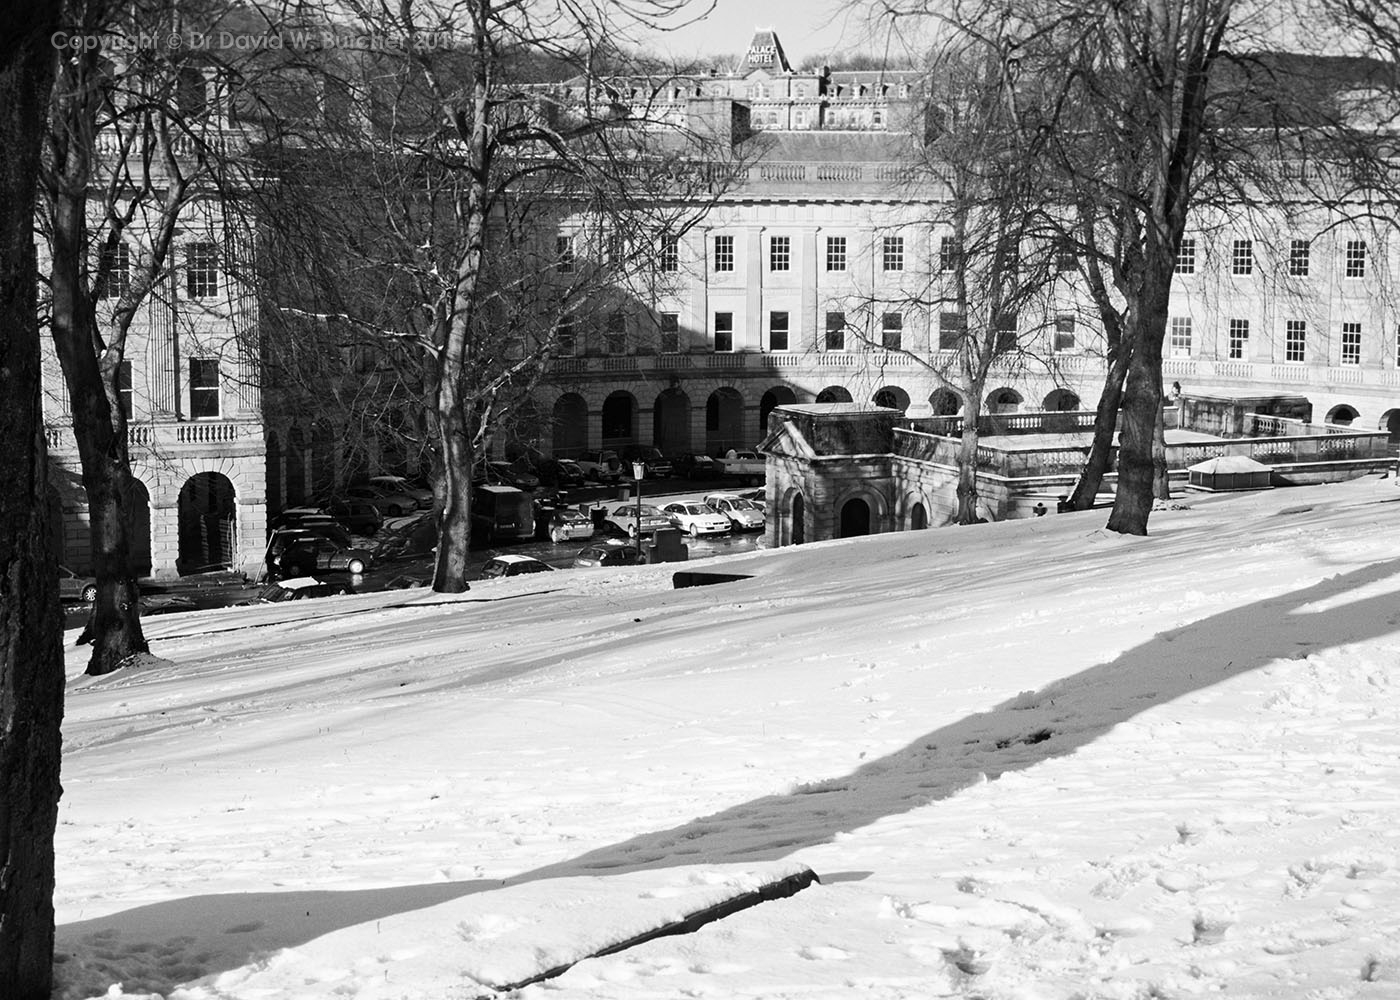 Buxton Crescent from the Slopes in Snow, Peak District